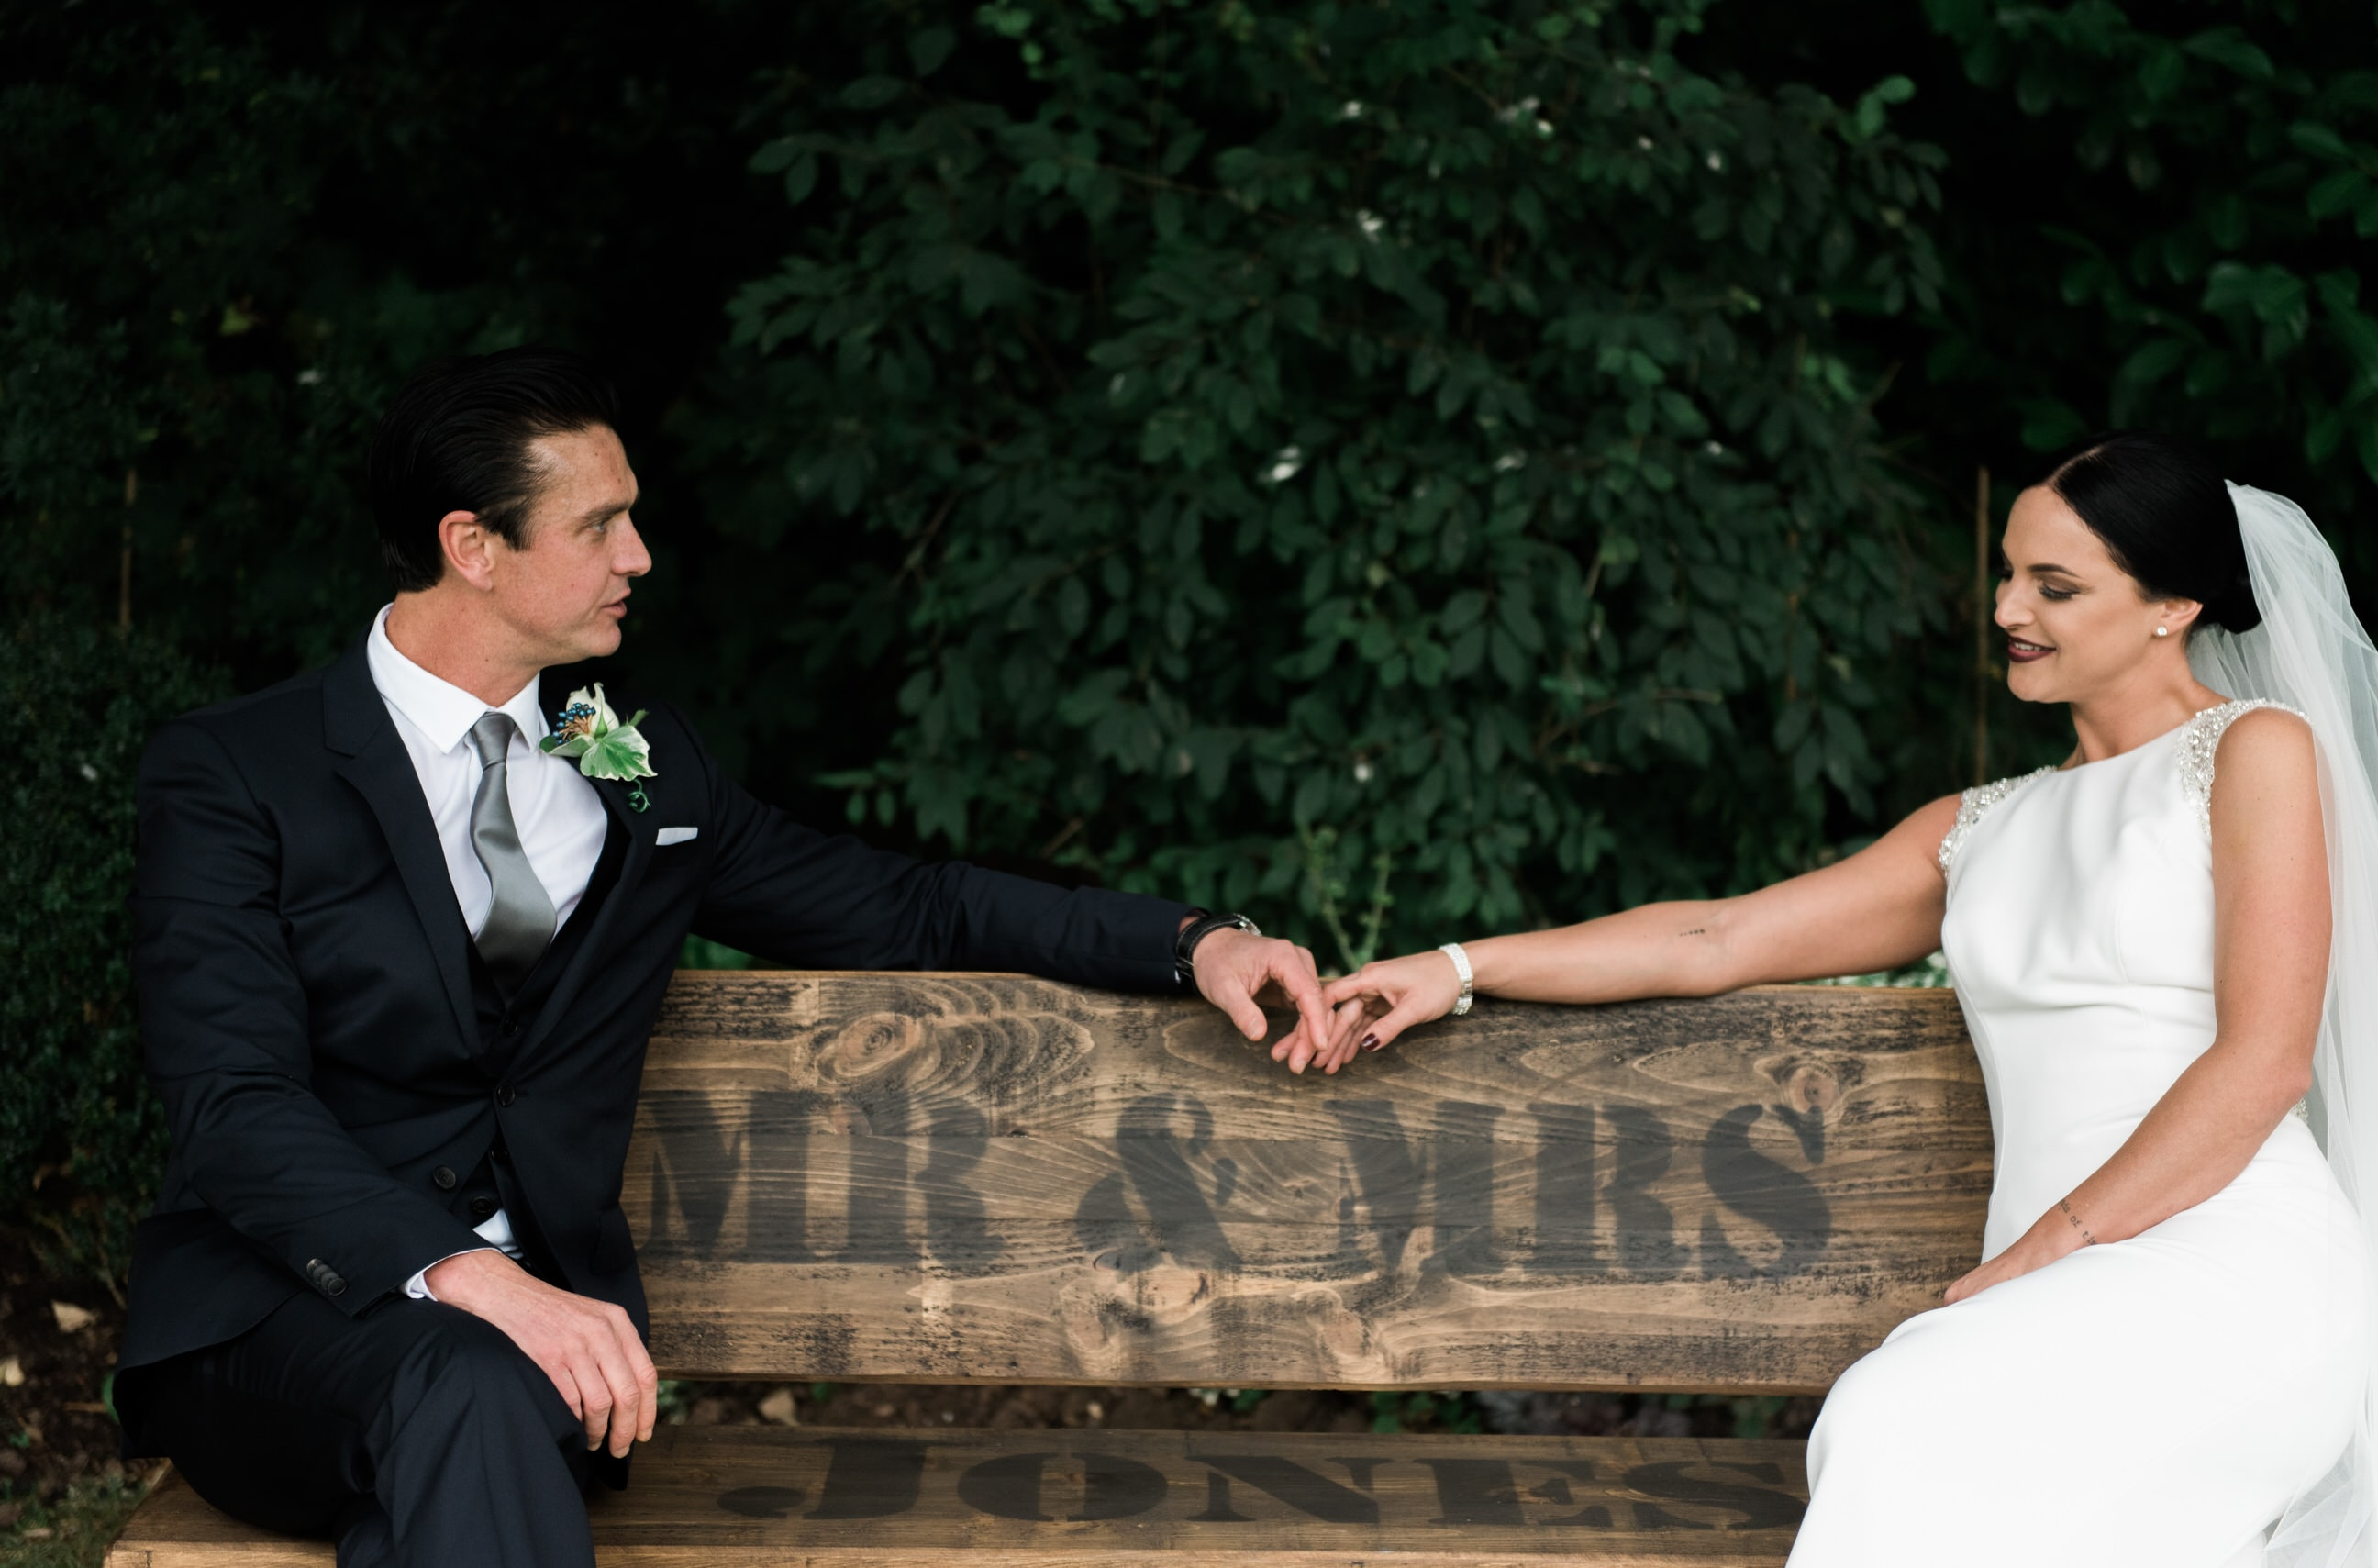 Bride and groom sat on a bench holding hands